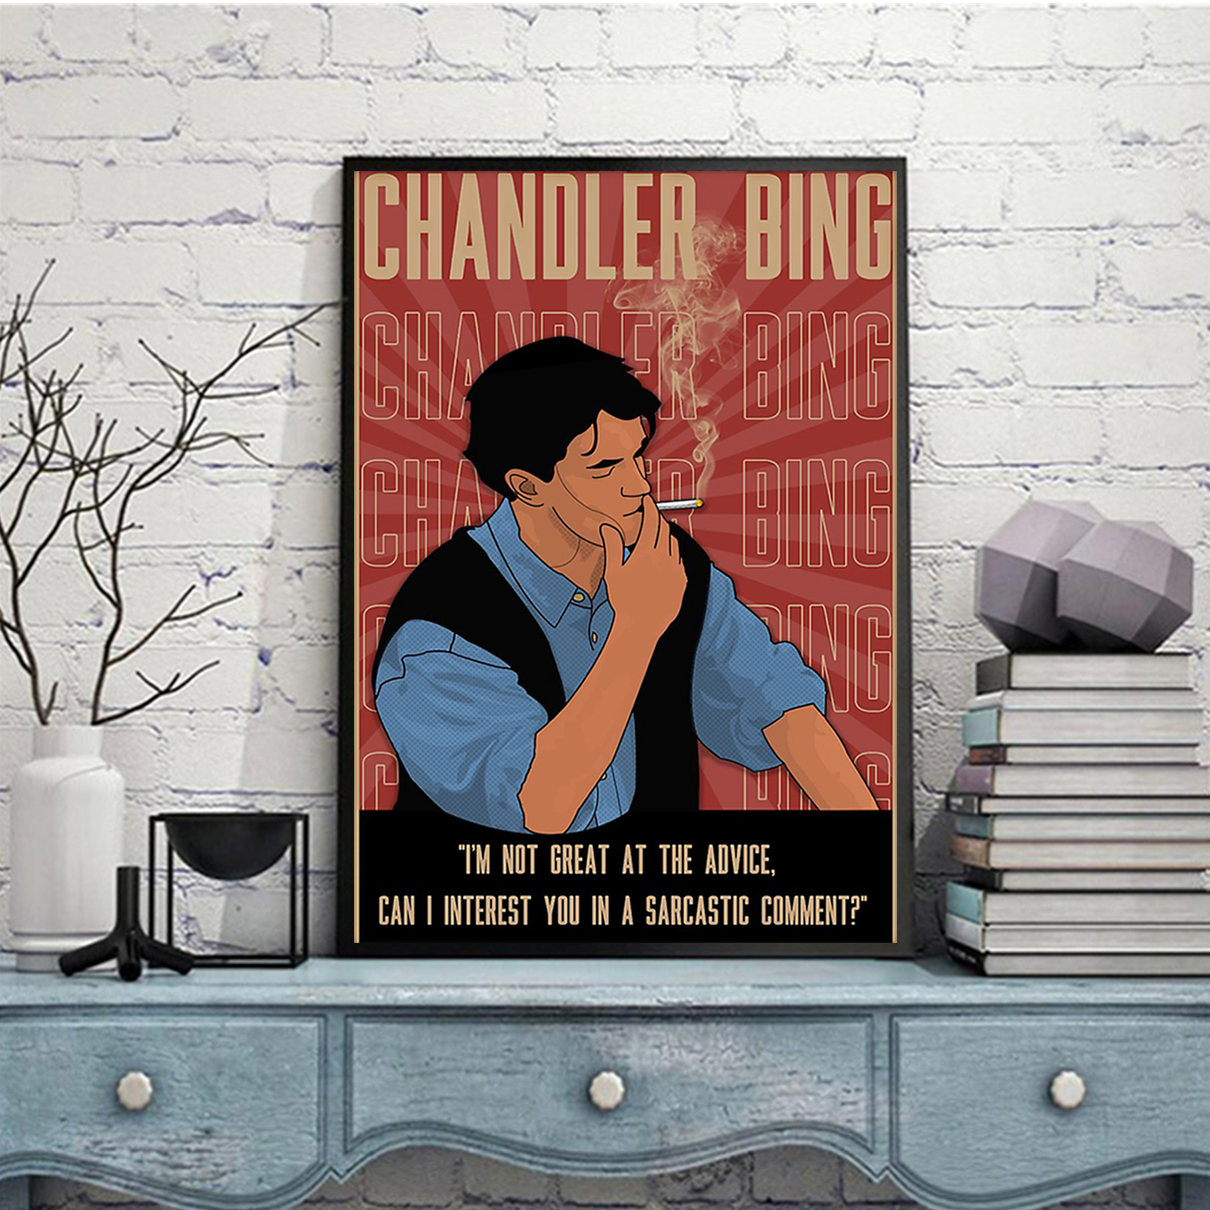 Chandler bing I'm not great at the advice poster and canvas prints A3